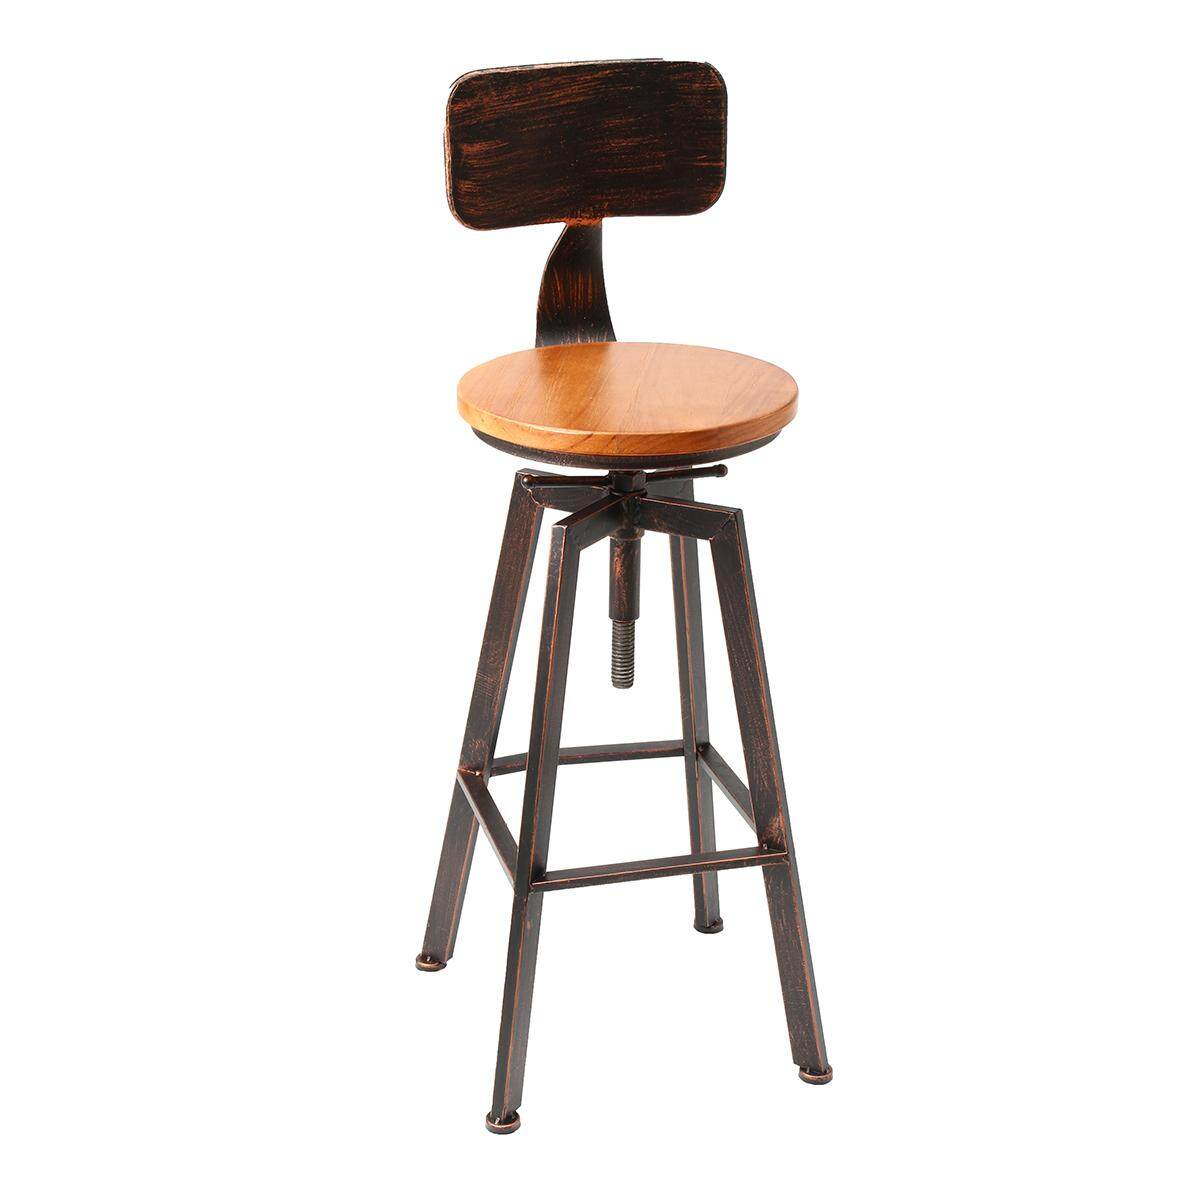 iron bar chairs solid wood bar stool retro industrial design rotating lift high chair dining Black